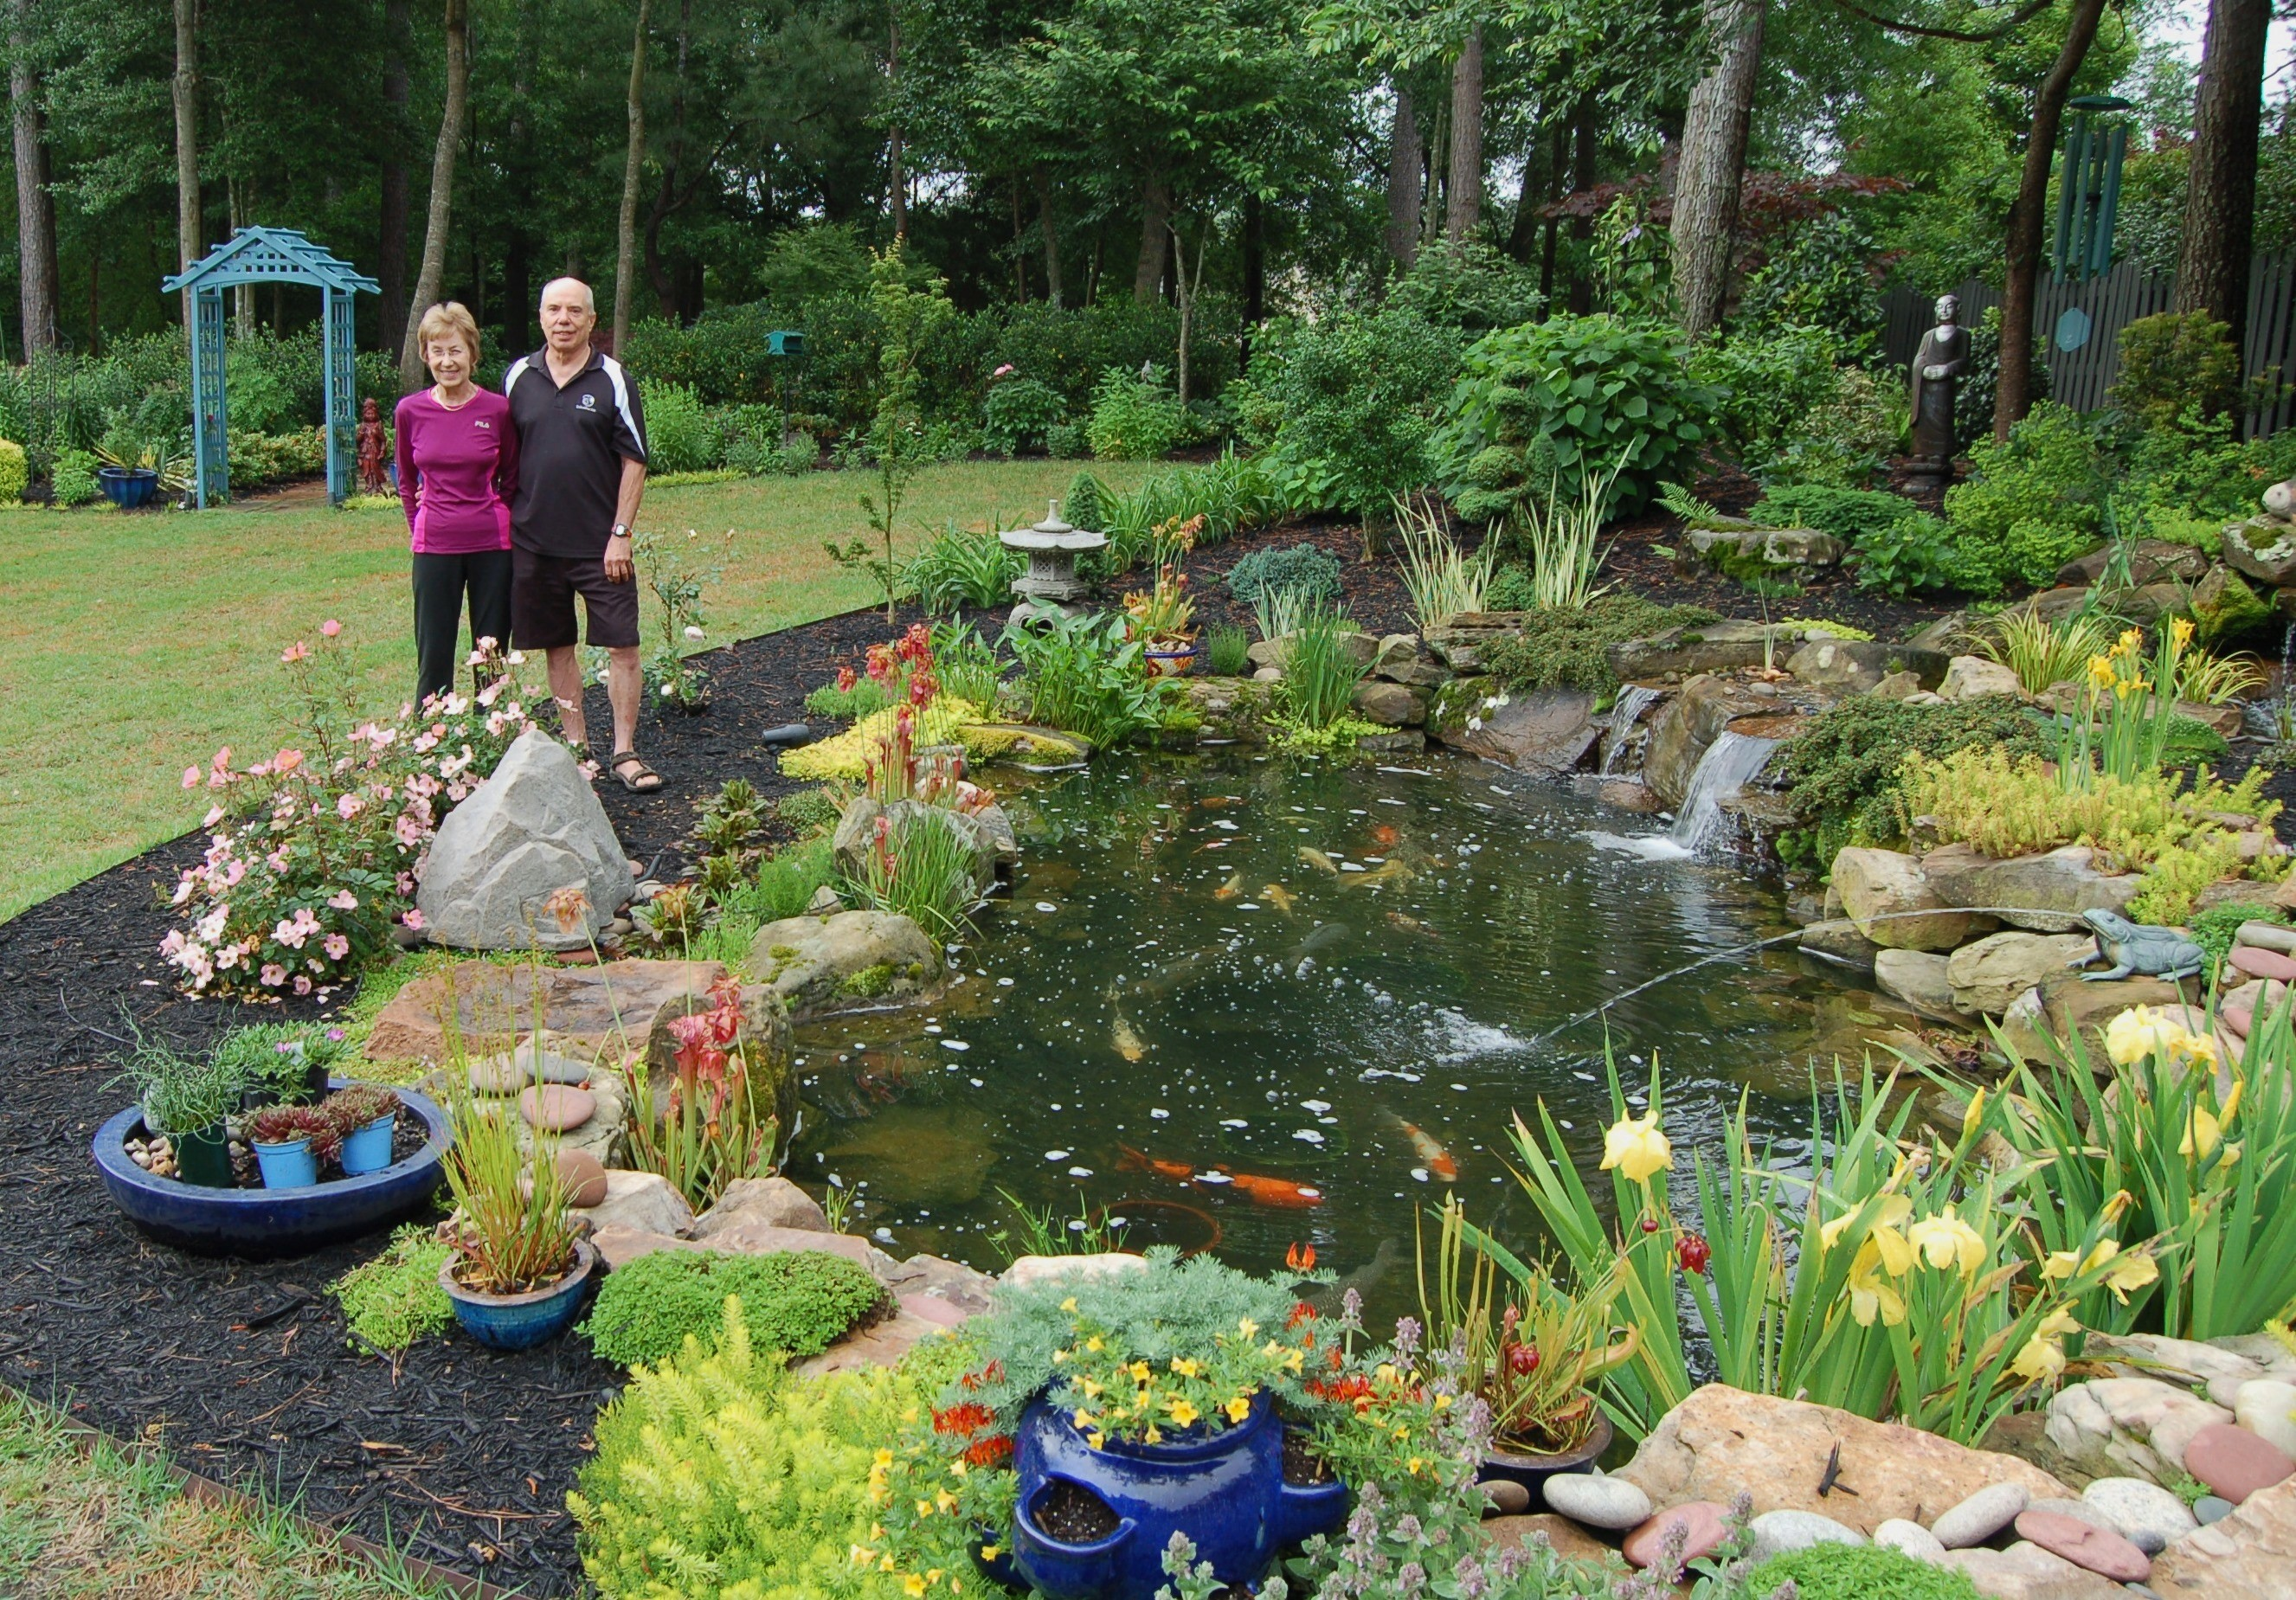 Sc koi water garden society opens 2013 tour hortitopia for Garden pond water features